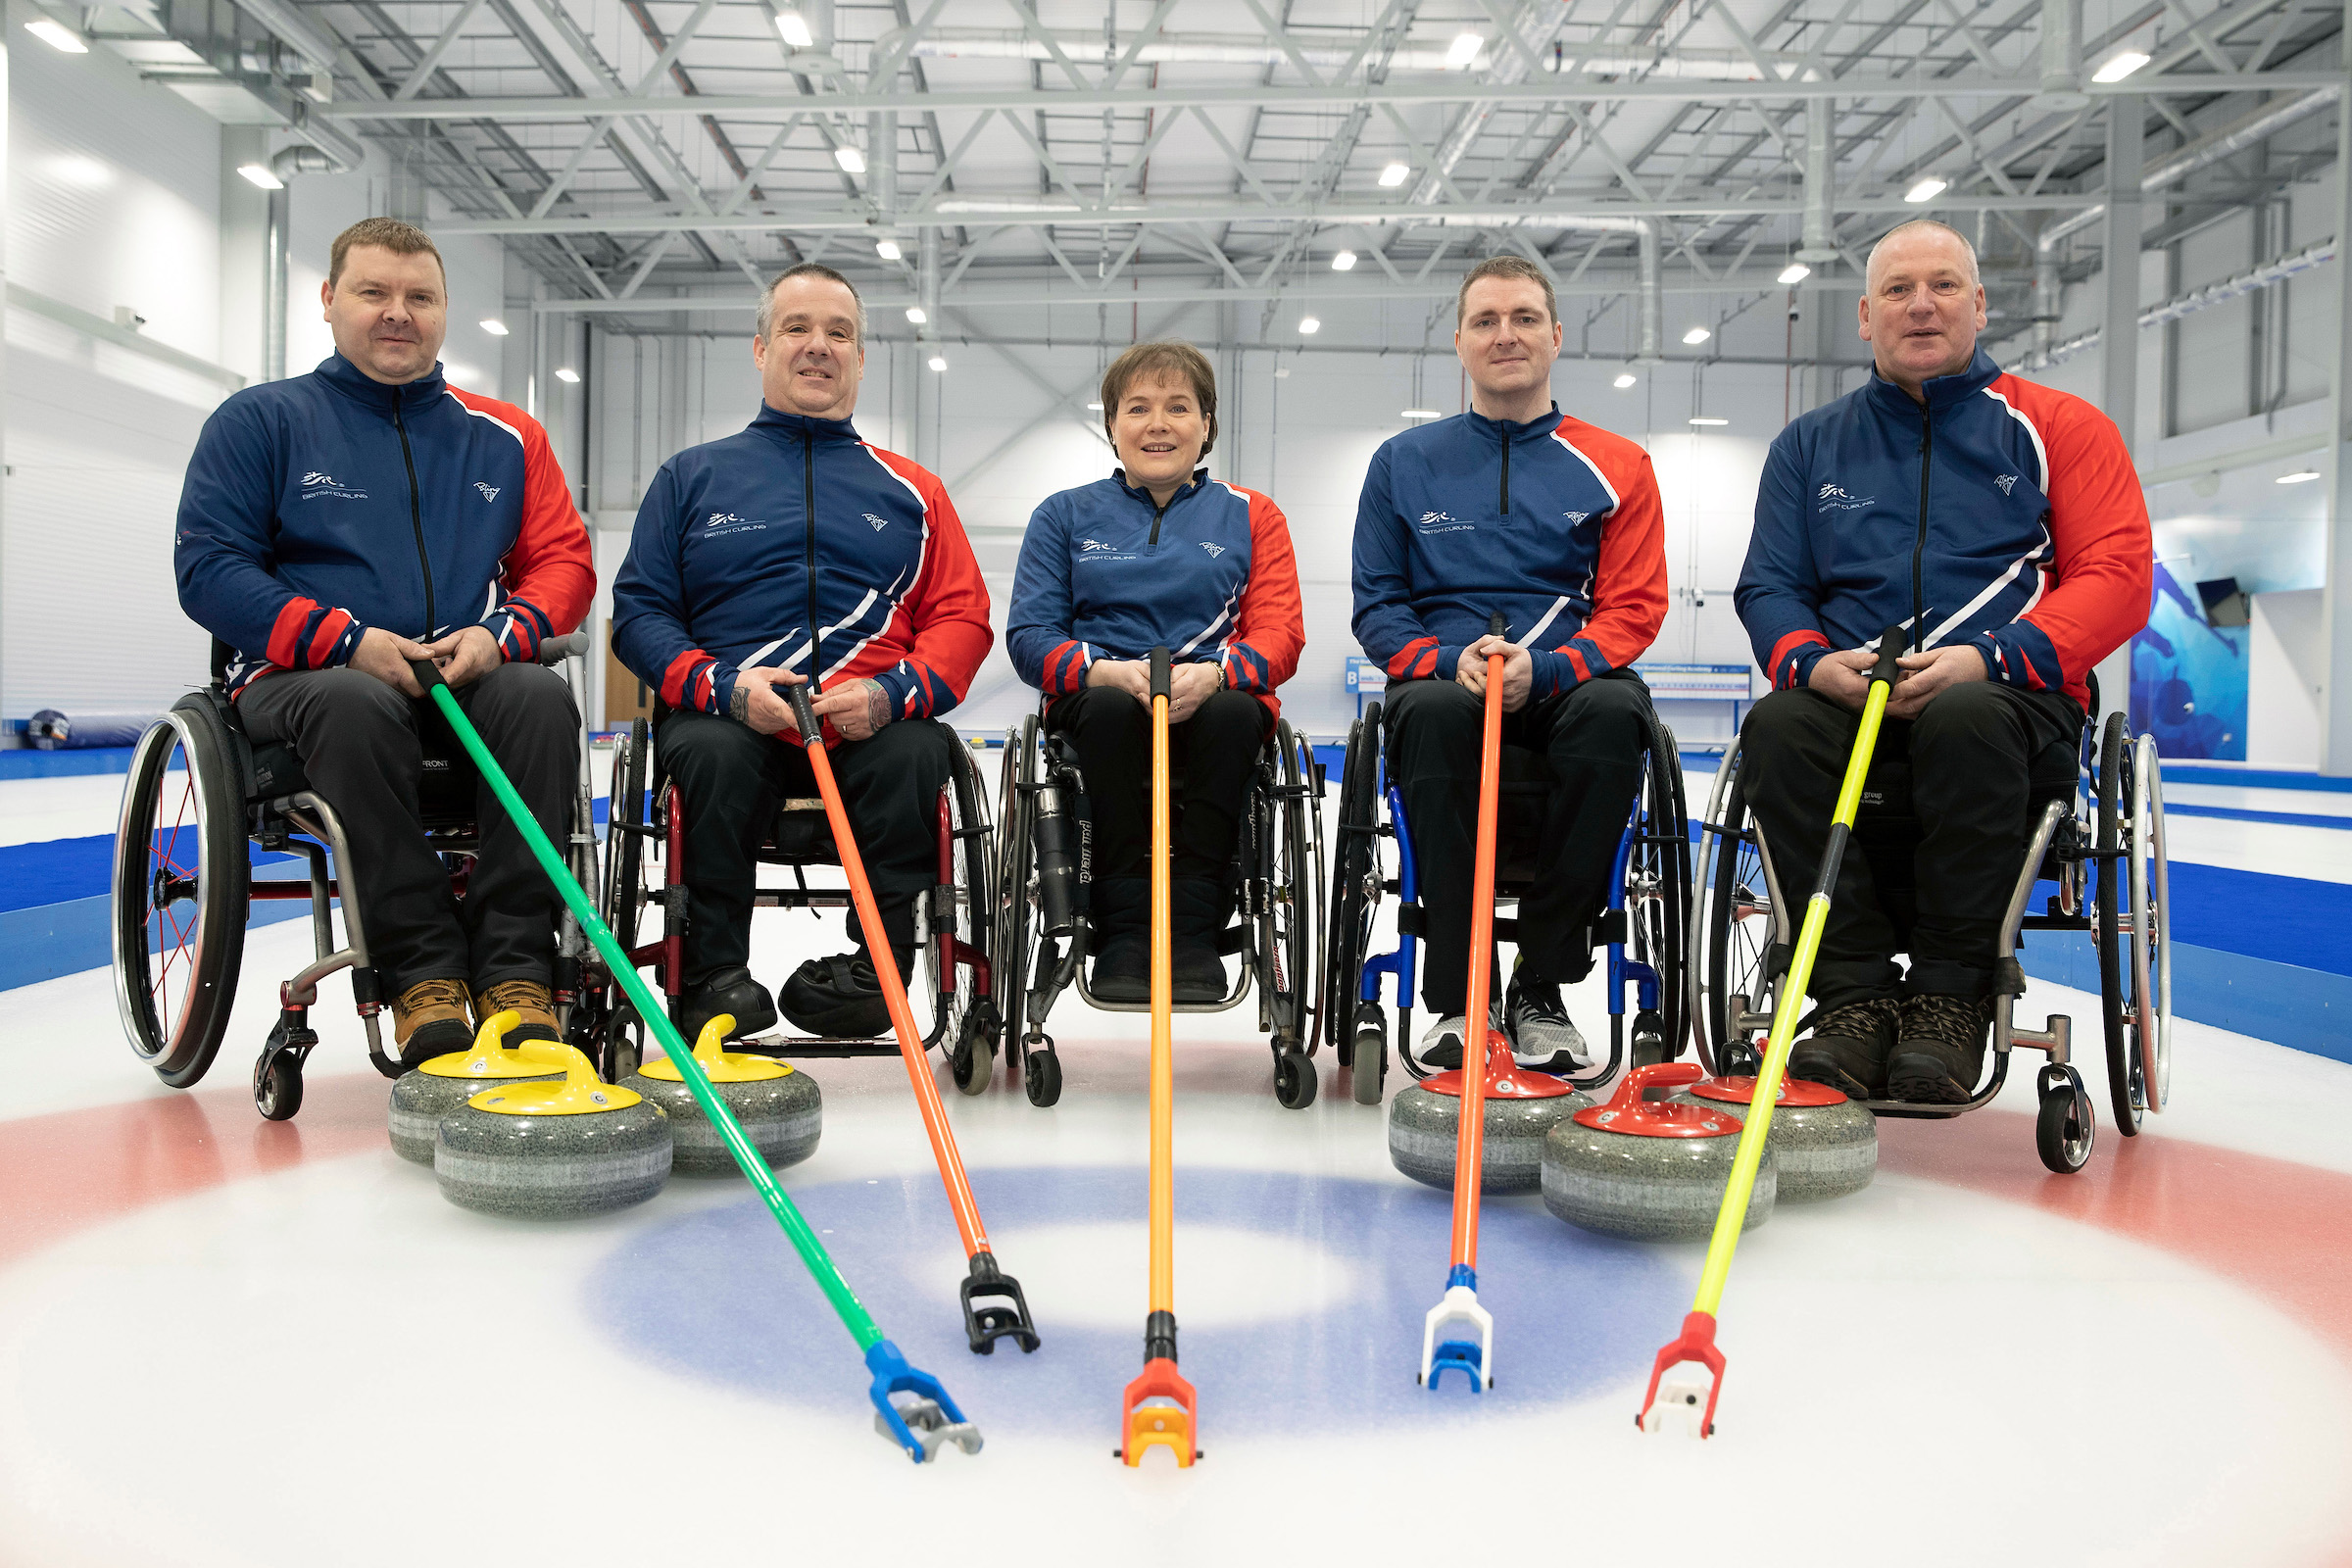 David Melrose, far left, pictured here with his team mates, took up curling five years ago.